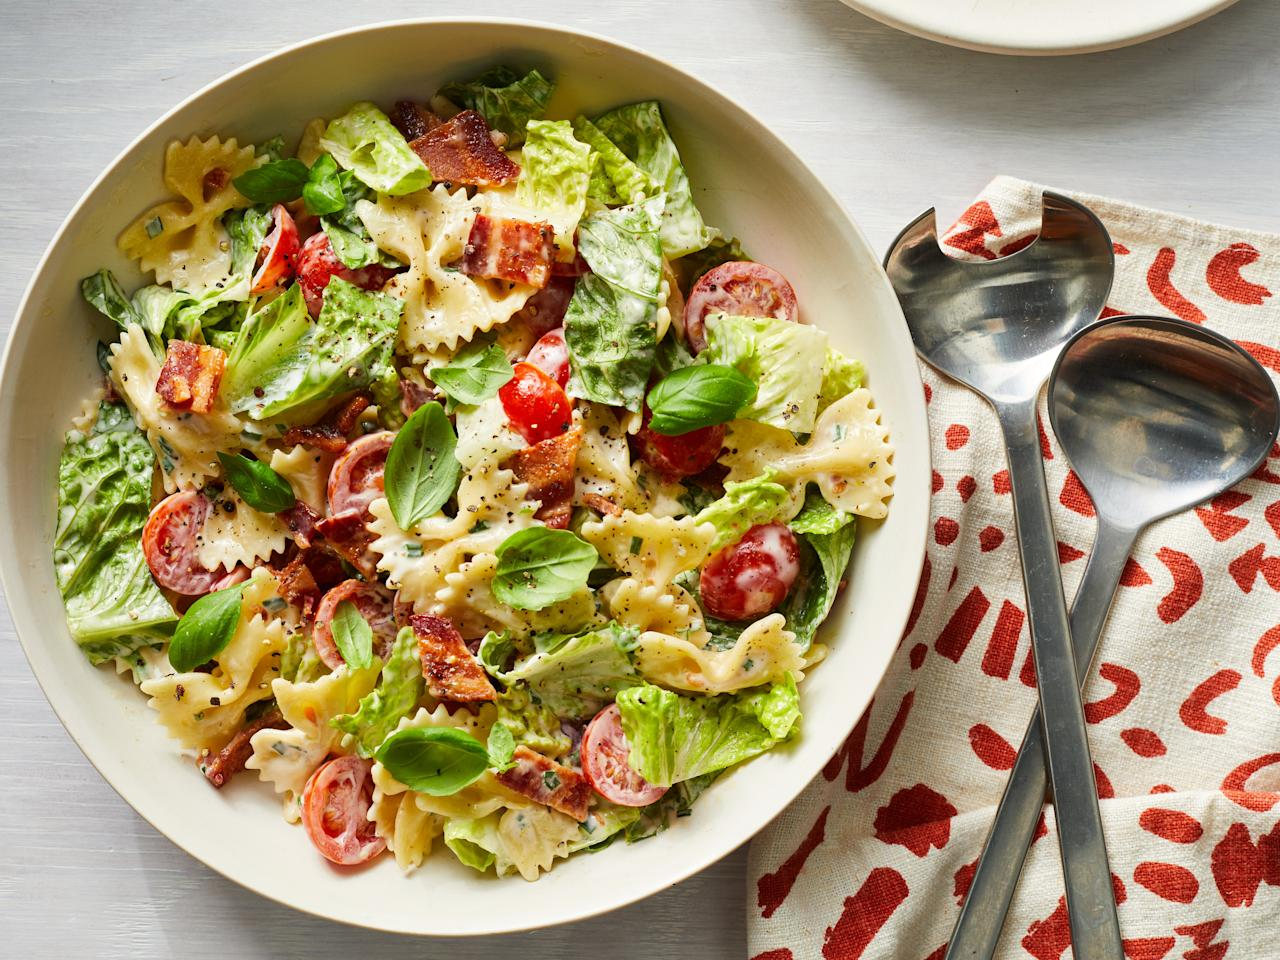 """<p>If you're looking for a foolproof side to take to your next barbecue or potluck, you've come to the right place. This BLT Pasta Salad is essentially a BLT in a bowl, and who could turn that down? It's creamy and crunchy, just like the sandwich, and packs a delicious punch, especially with the use of fresh tomatoes and lettuce. If you have access to heirloom cherry tomatoes, feel free to use those instead. You could also use baby arugula instead of lettuce for a peppery zing. You can prepare this ahead of time, but don't dress until immediately before serving—otherwise, the lettuce will wilt and lose its crisp.</p> <p><a href=""""https://www.myrecipes.com/recipe/blt-pasta-salad-2"""">BLT Pasta Salad Recipe</a></p>"""